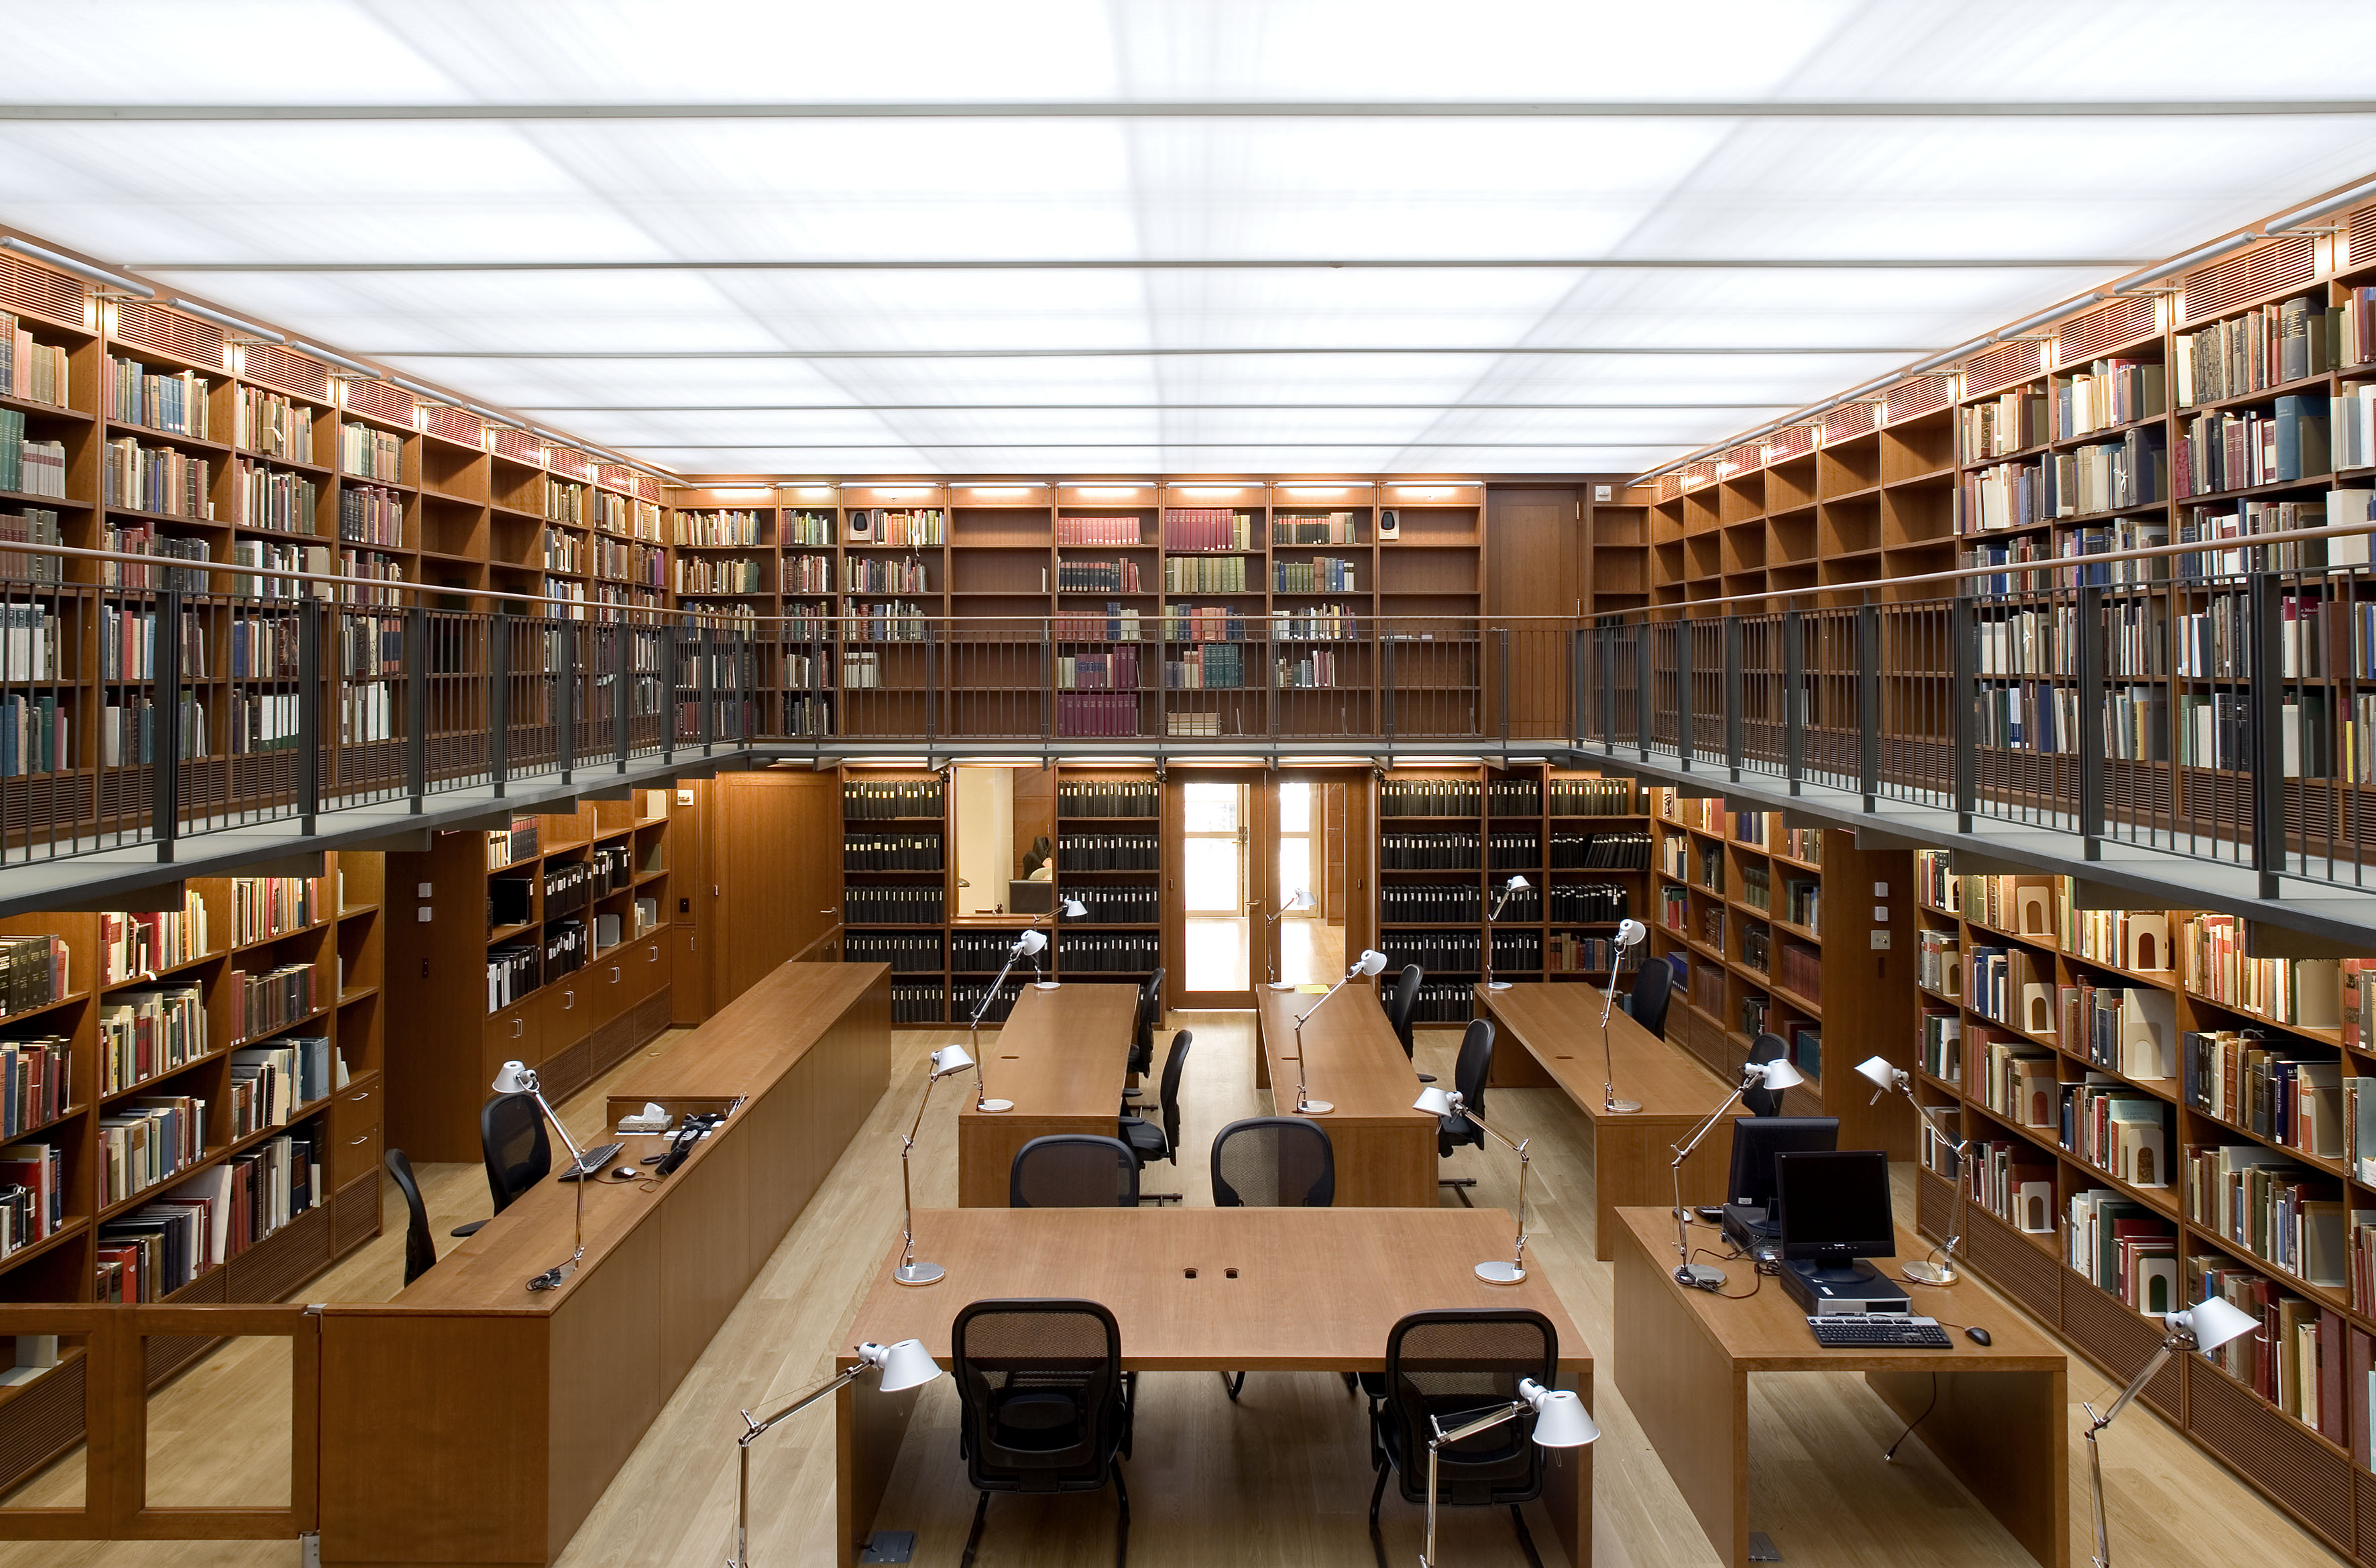 The Reading Room at the Morgan Library & Museum. Photography by Michel Denancé. Image courtesy of The Morgan Library & Museum.